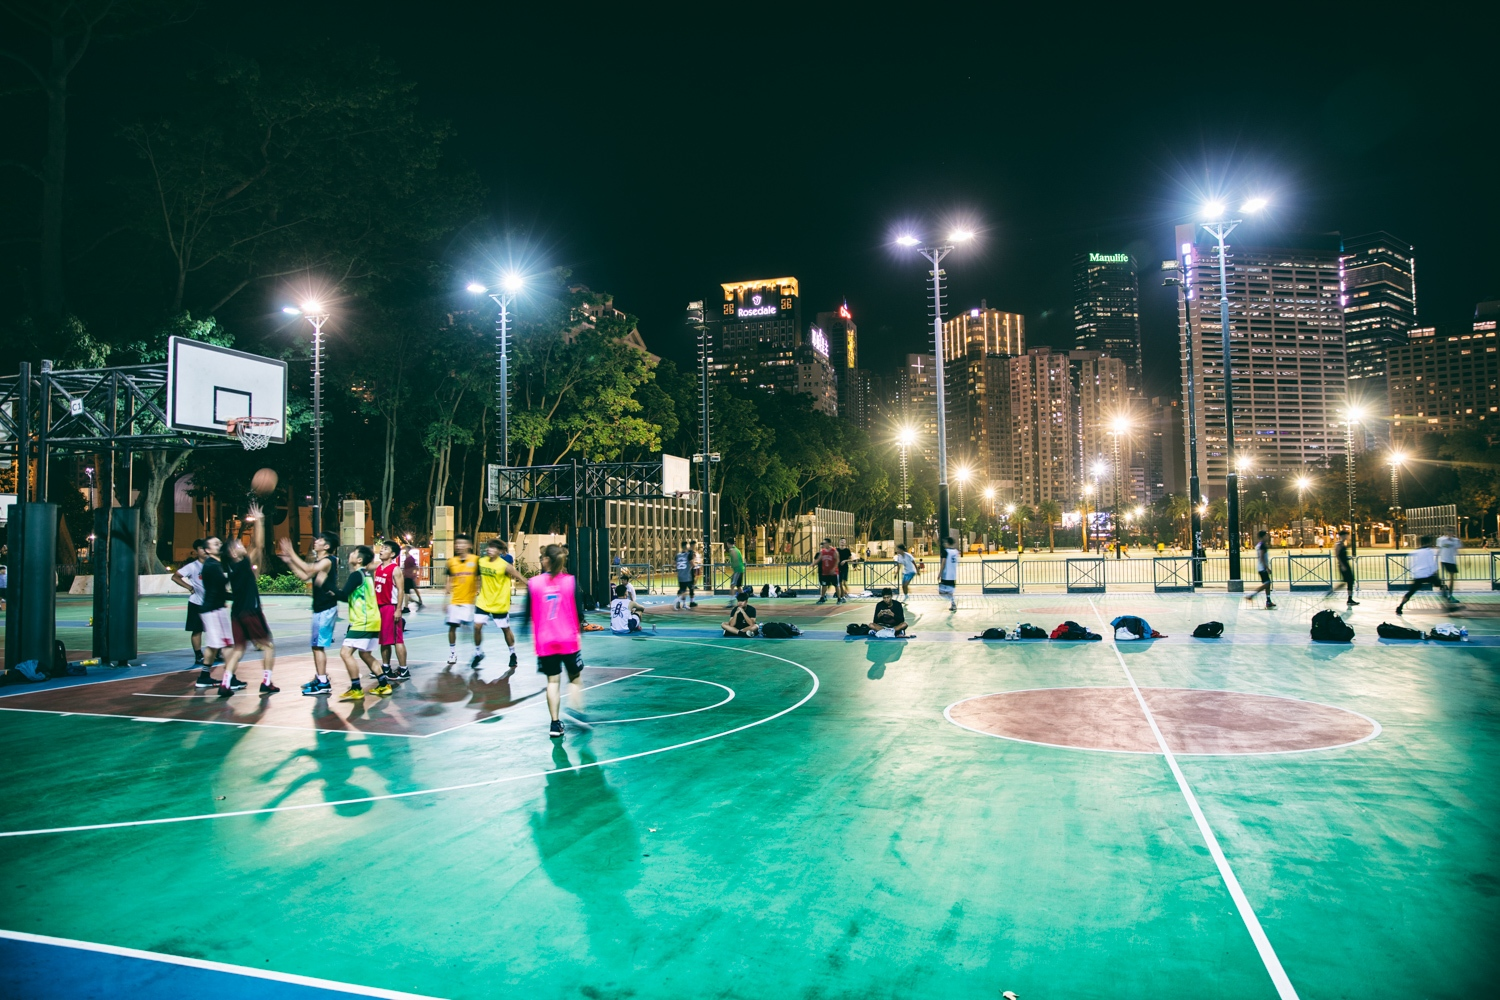 Hong Kong basketball court